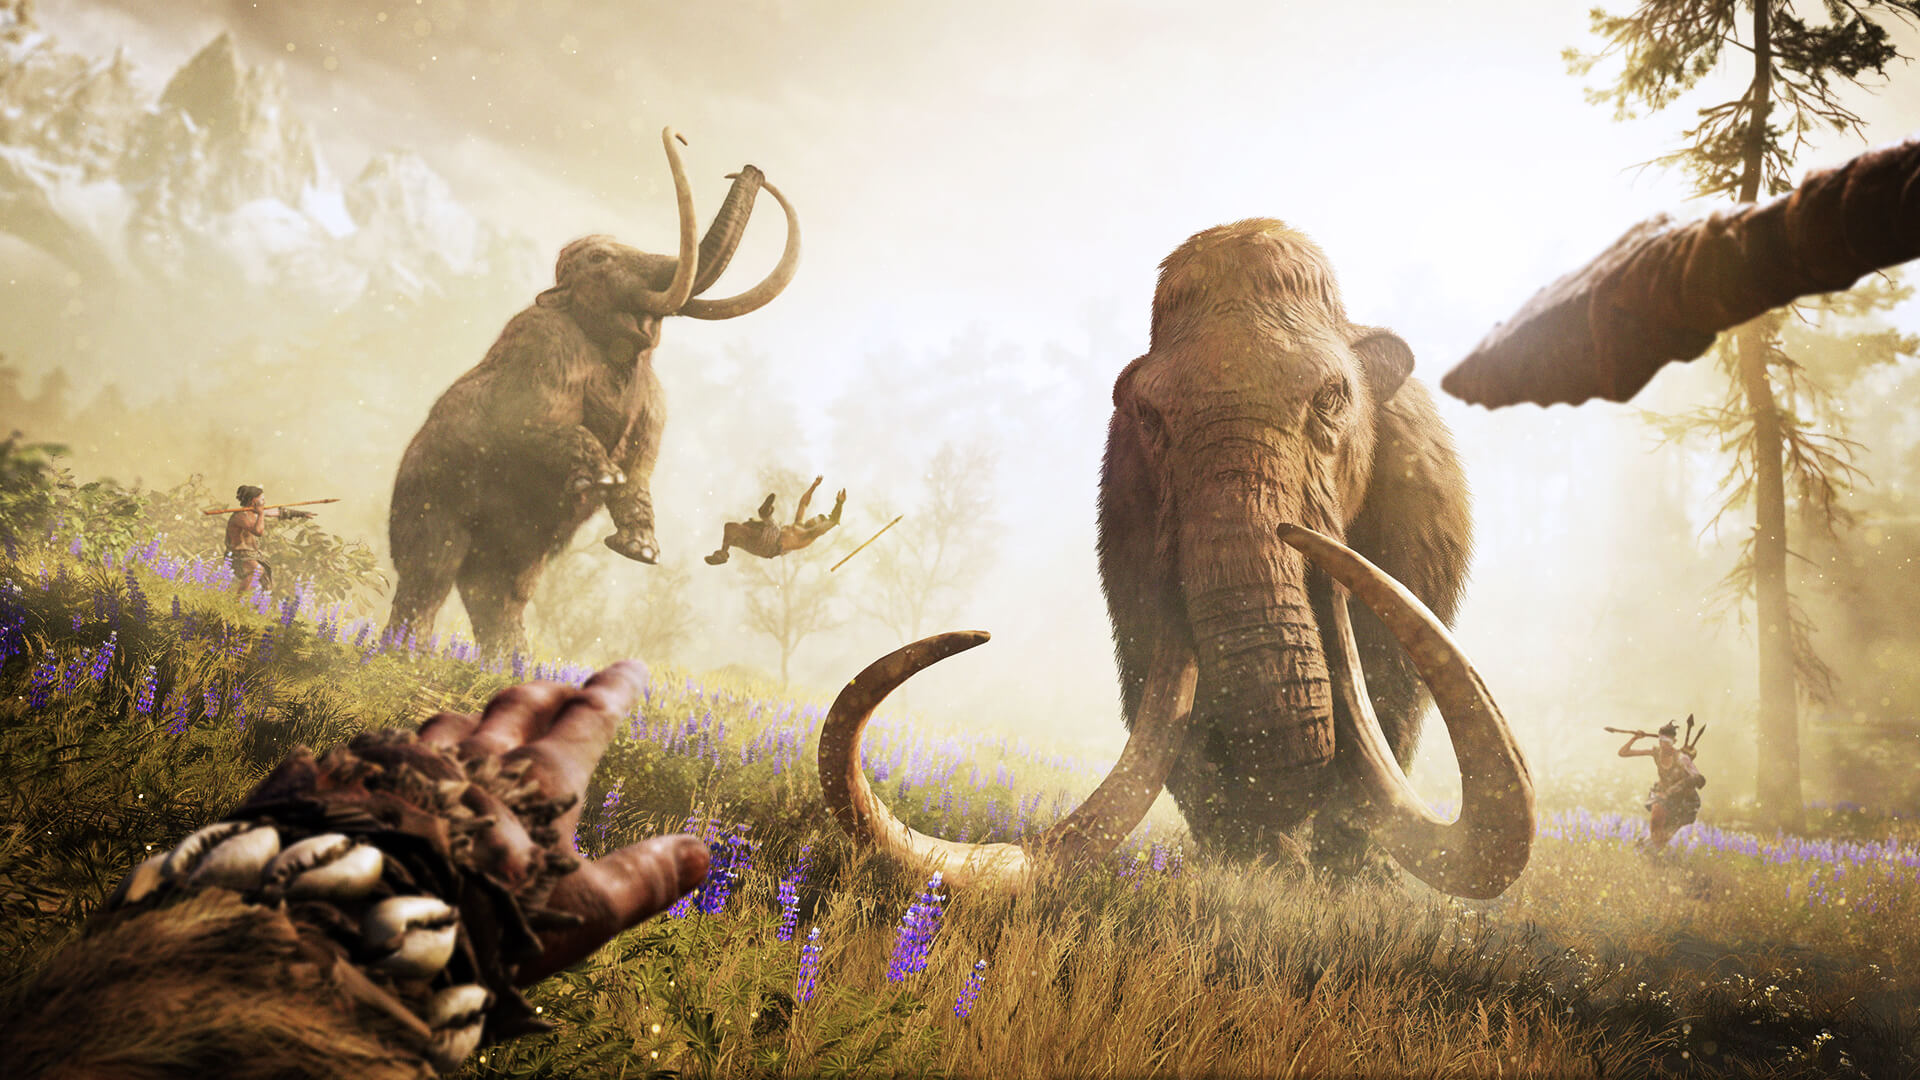 Far Cry Primal Rated By ESRB, New Info Revealed